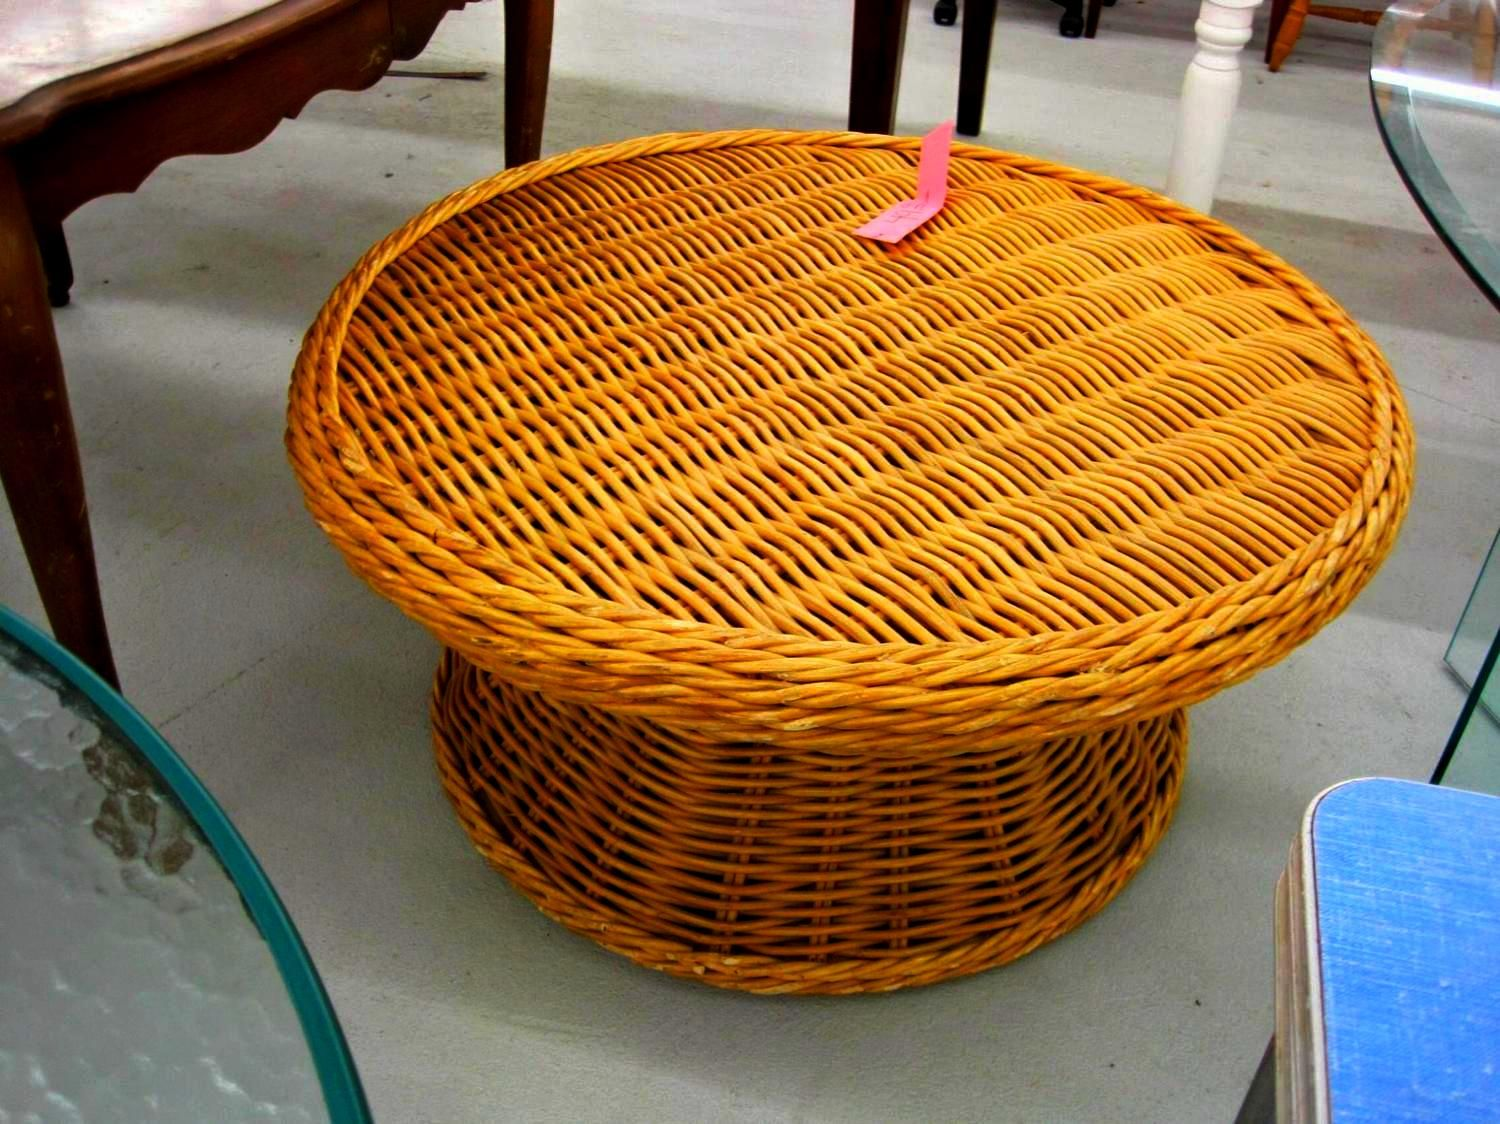 Fabulous Small Light Round Wicker Ottoman For Living Room Wicker Onthecornerstone Fun Painted Chair Ideas Images Onthecornerstoneorg